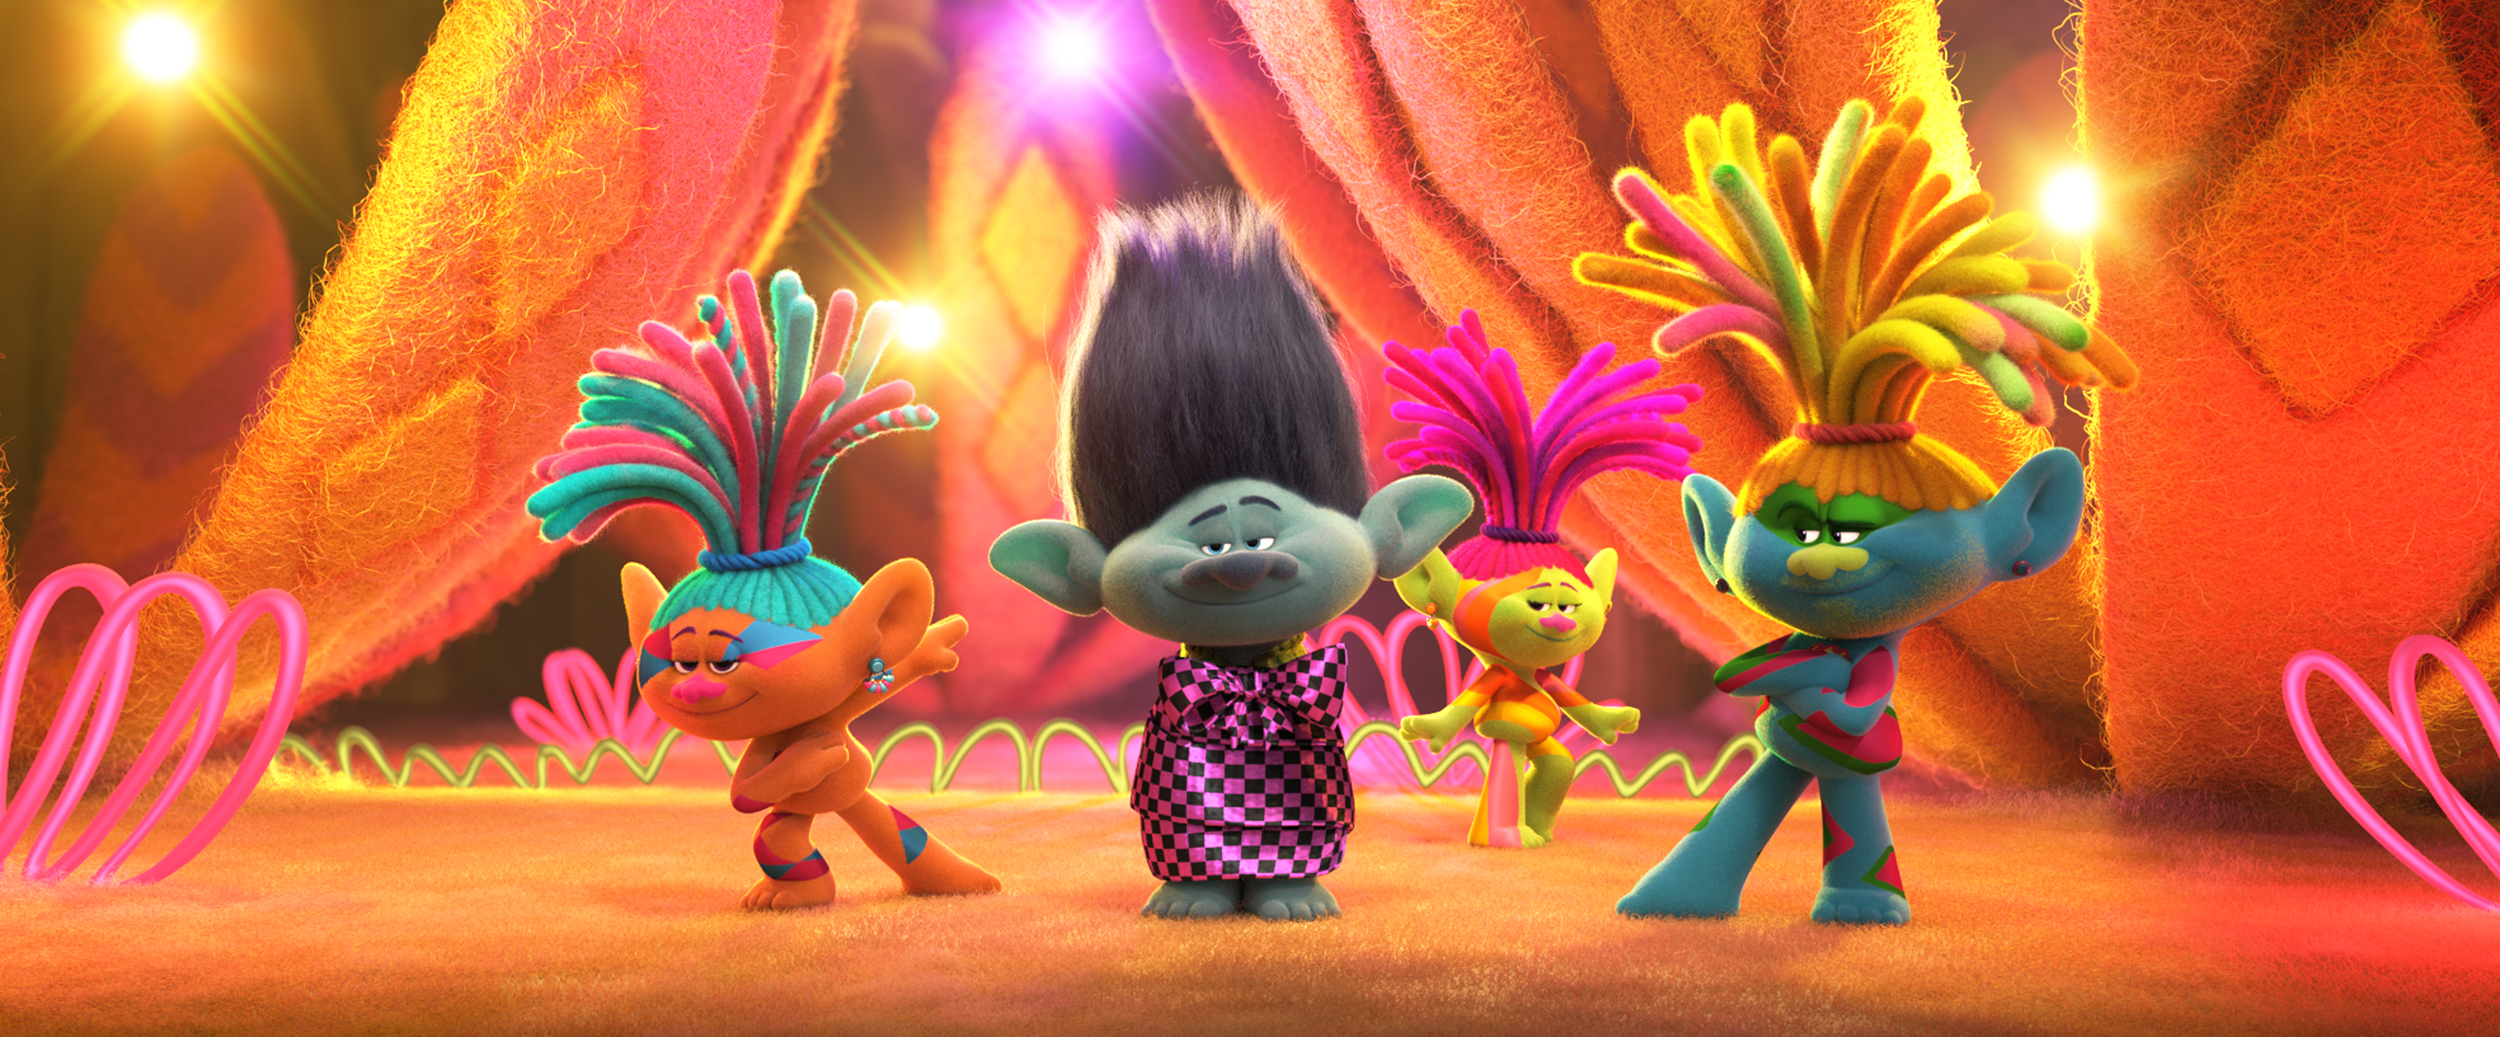 Trolls World Tour' on demand during coronavirus is a premiere ...